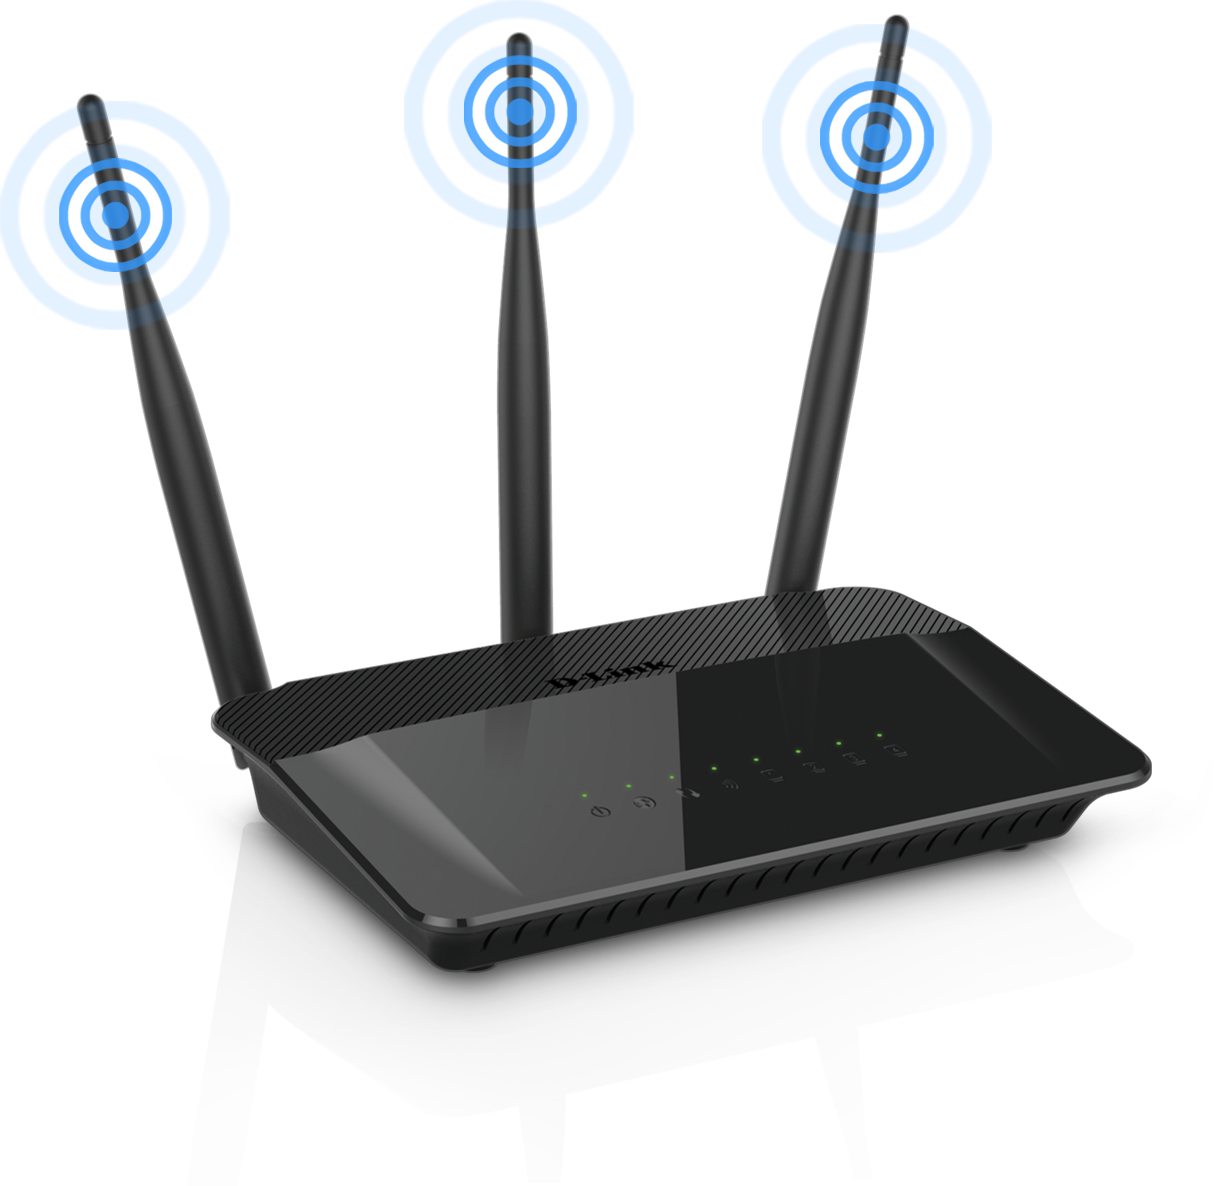 Router mode 3 antennas